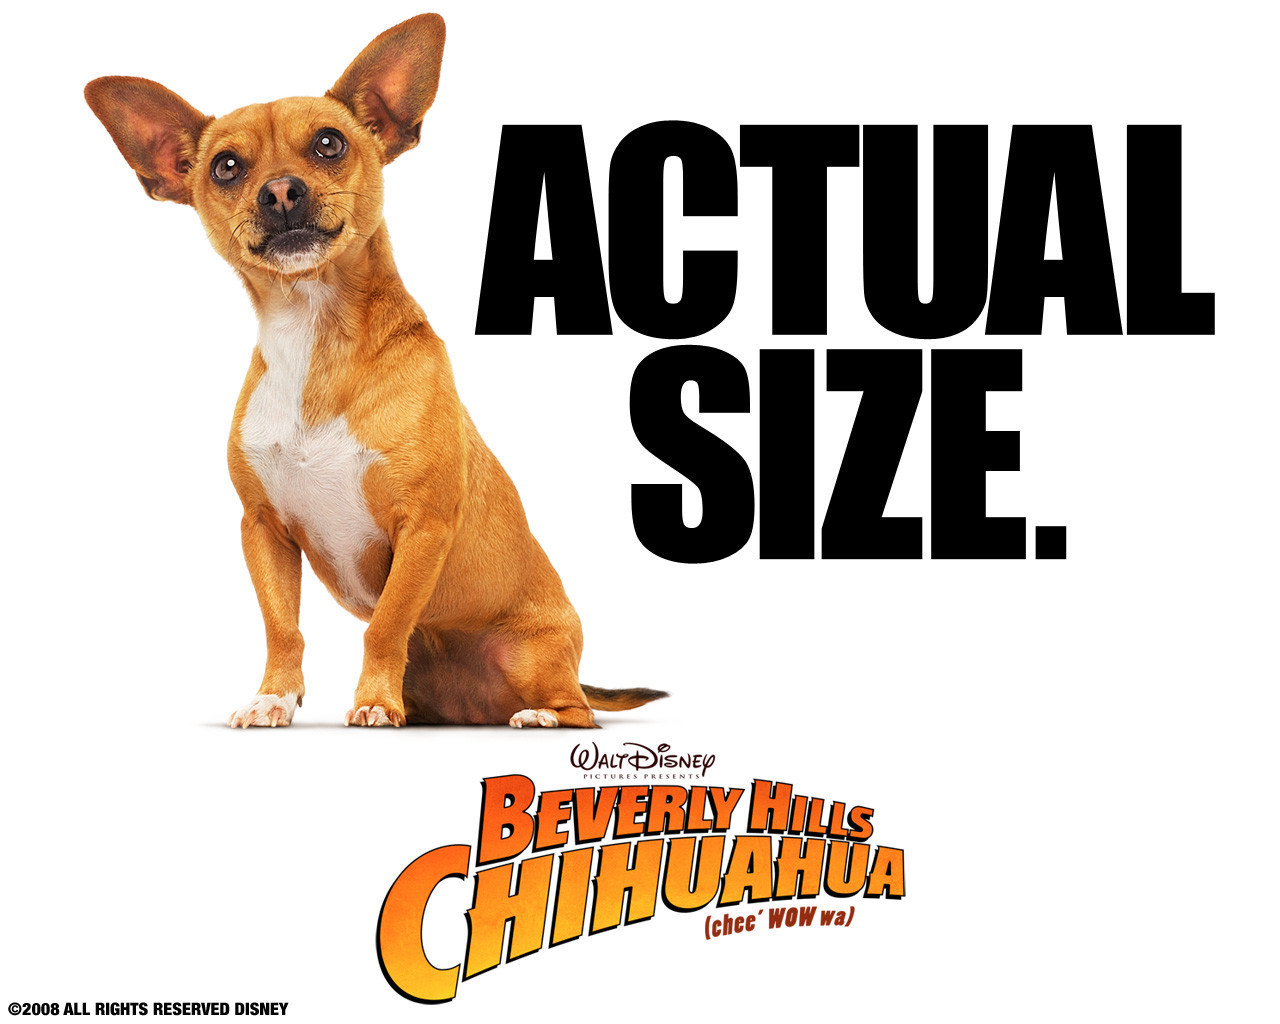 Images of Beverly Hills Chihuahua | 1280x1024